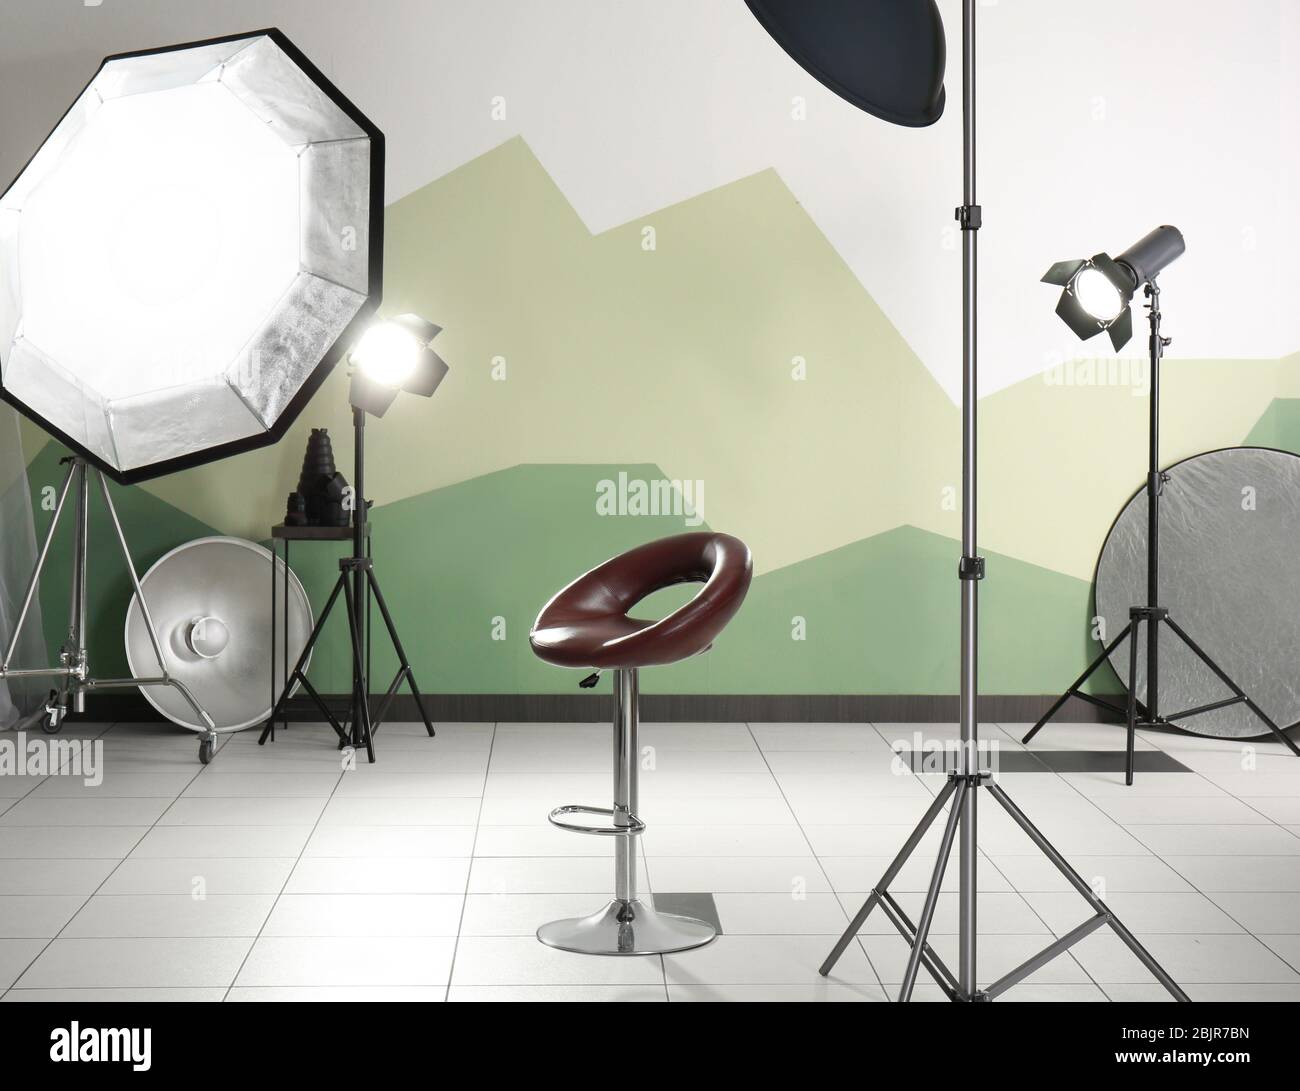 Interior Of Modern Photo Studio With Chair And Professional Equipment Stock Photo Alamy